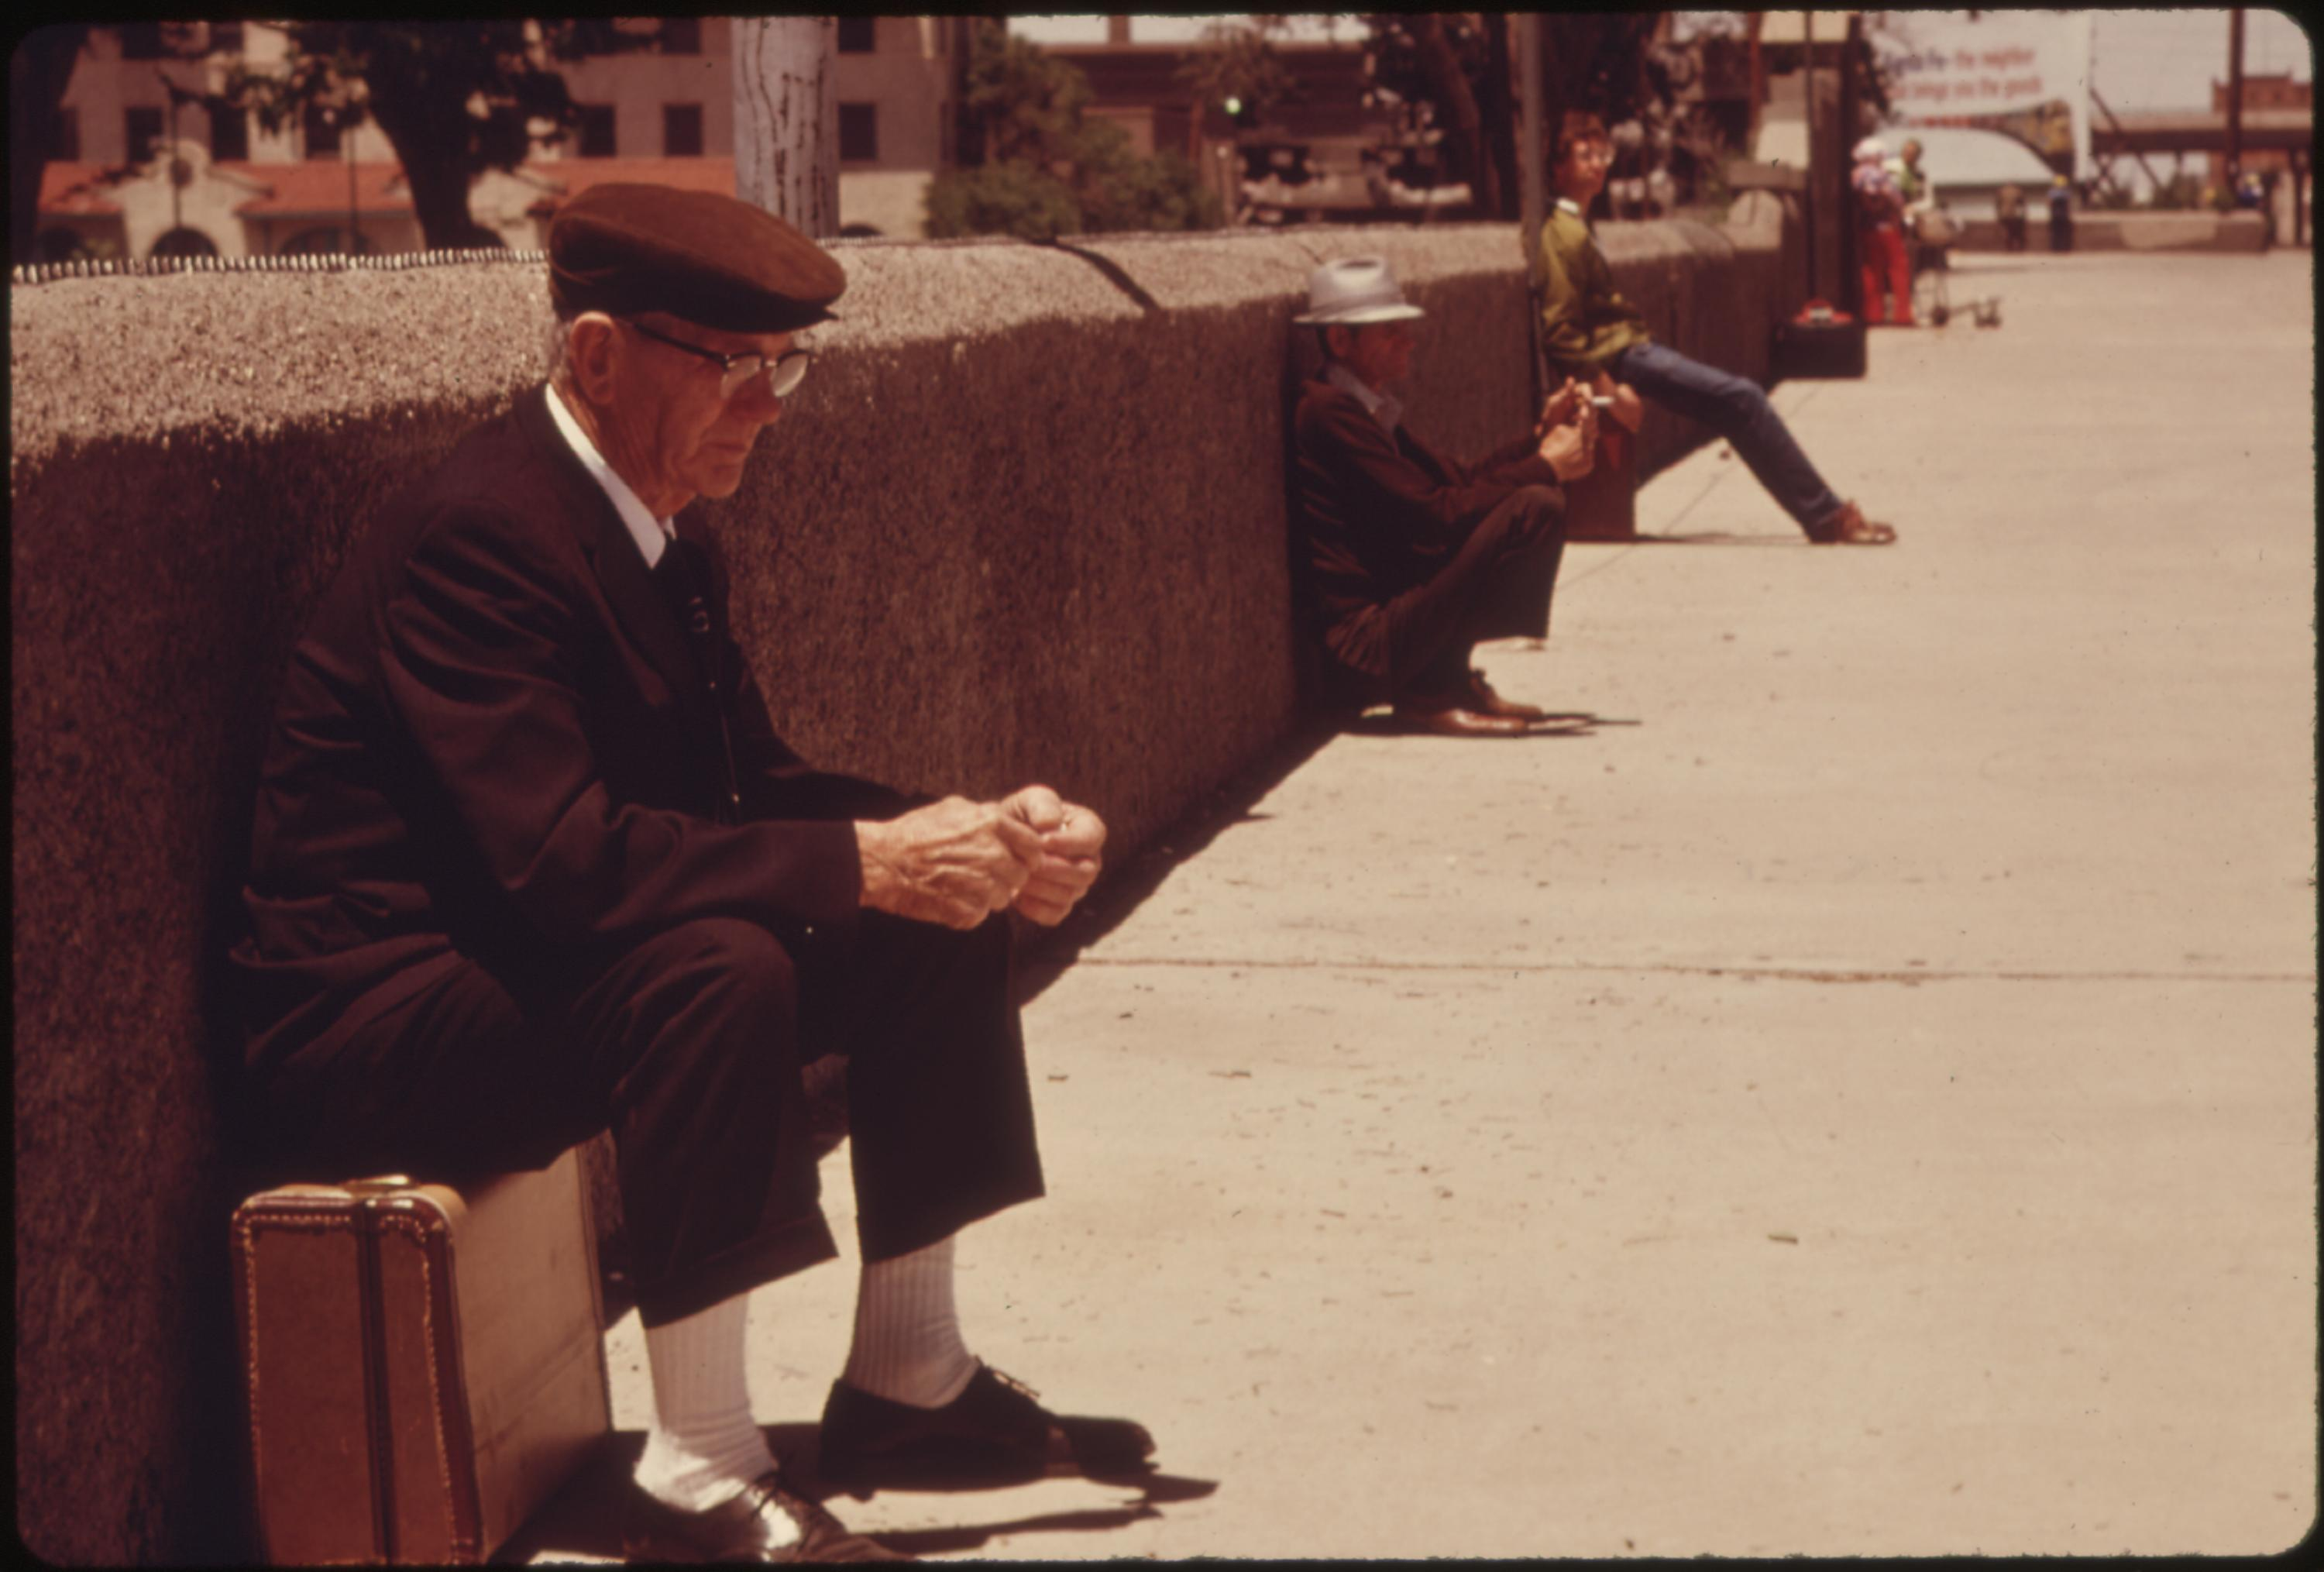 A wait for the train outside the station at Albuquerque, New Mexico, June 1974